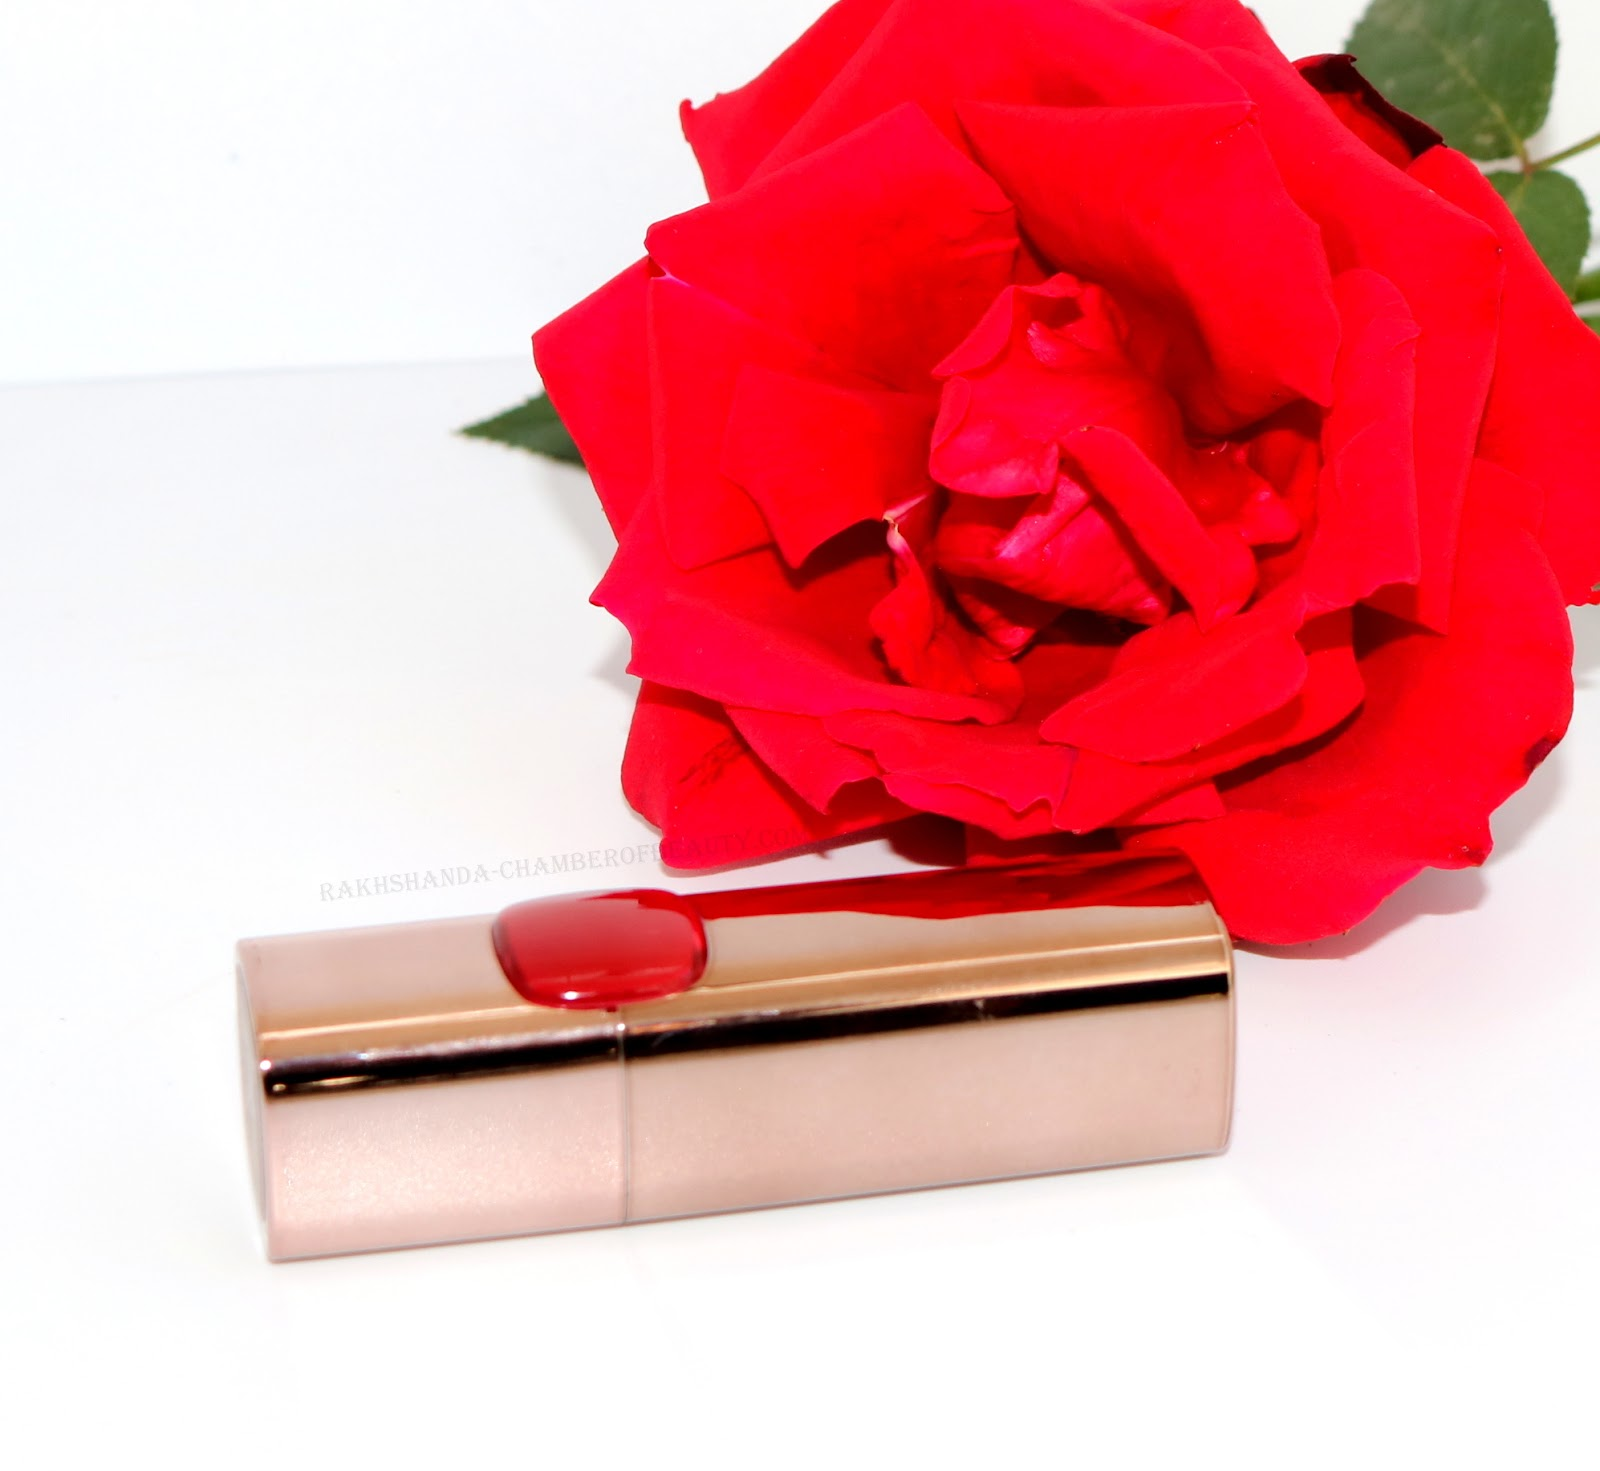 L'Oreal Paris Color Riche Moist Matte Lipstick-Blaze of Red Review/www.rakhshanda-chamberofbeauty.com/Indian beauty blogger